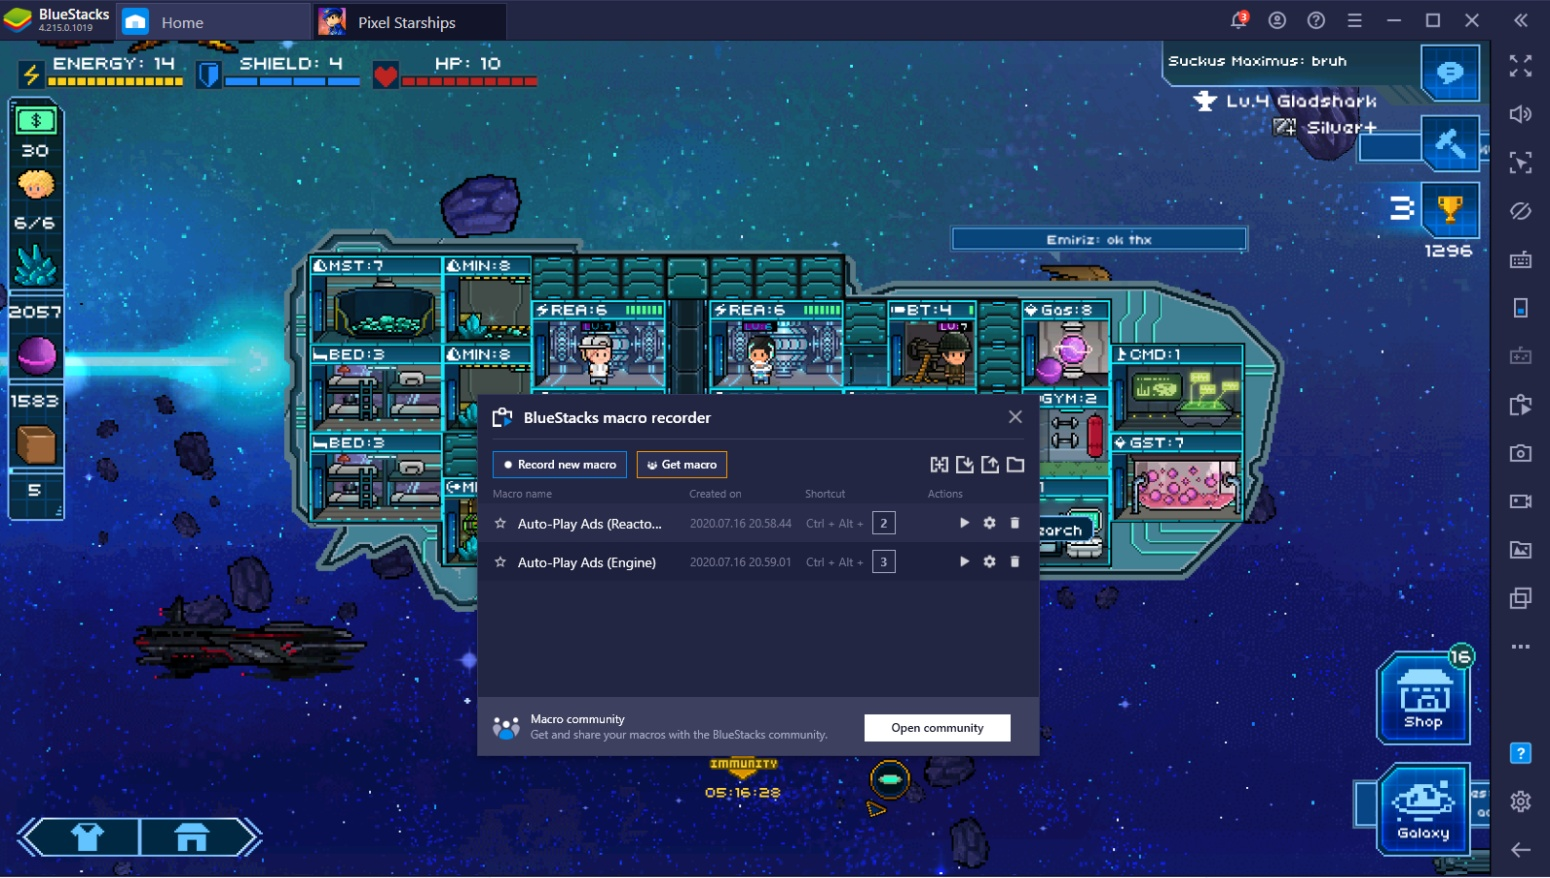 Setting Up Pixel Starships For Victory with BlueStacks on PC